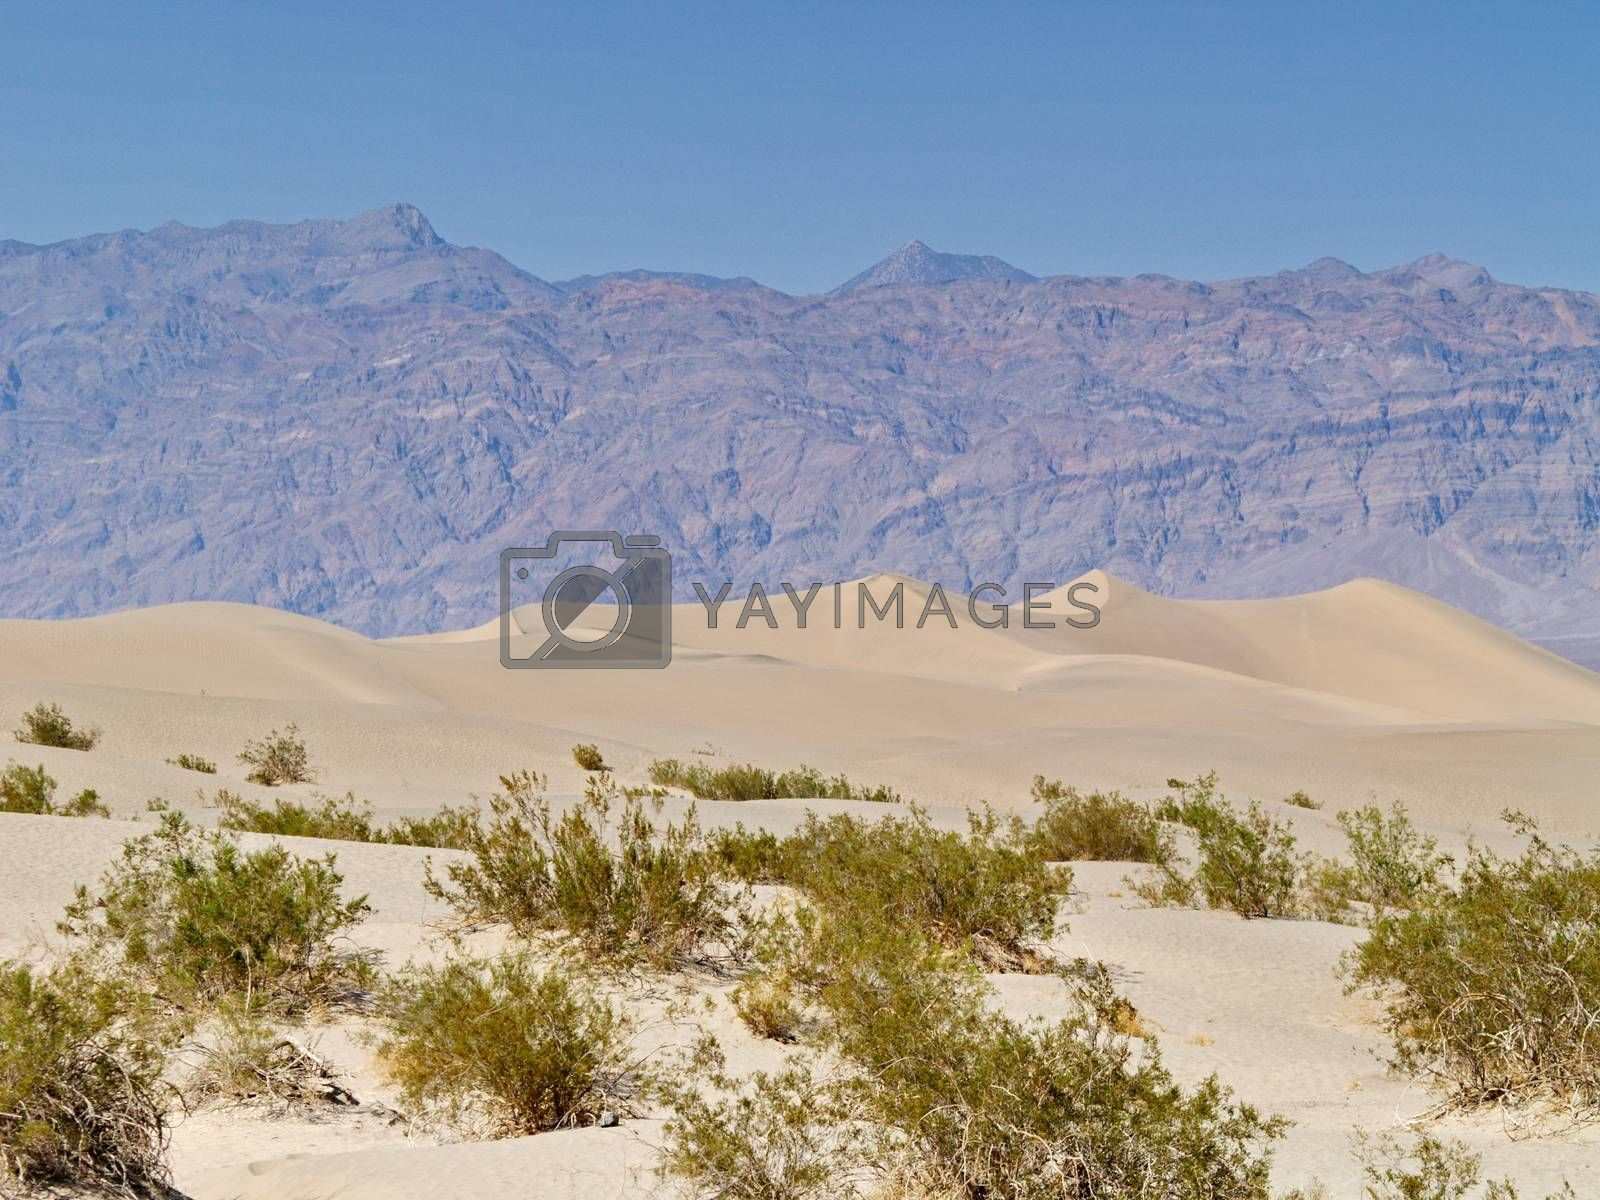 Royalty free image of Sand dunes in Desert Valley, California, USA by anderm